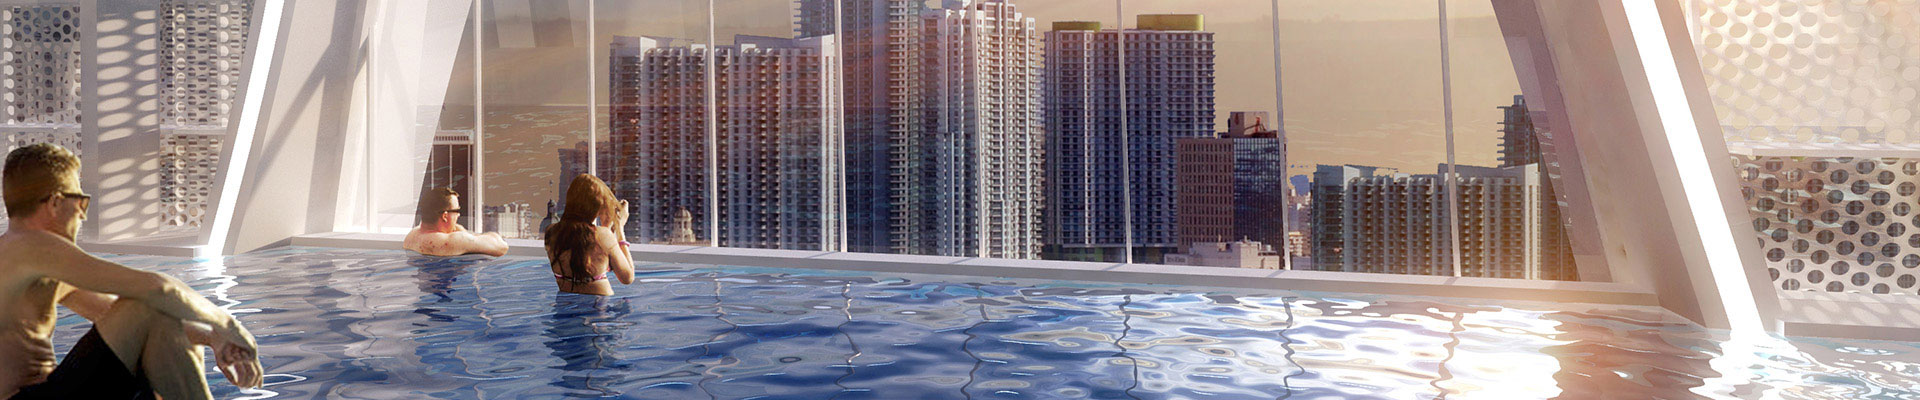 NEW DEVELOPMENTS IN MIAMI OKAN TOWERS MIAMI AMENITIES